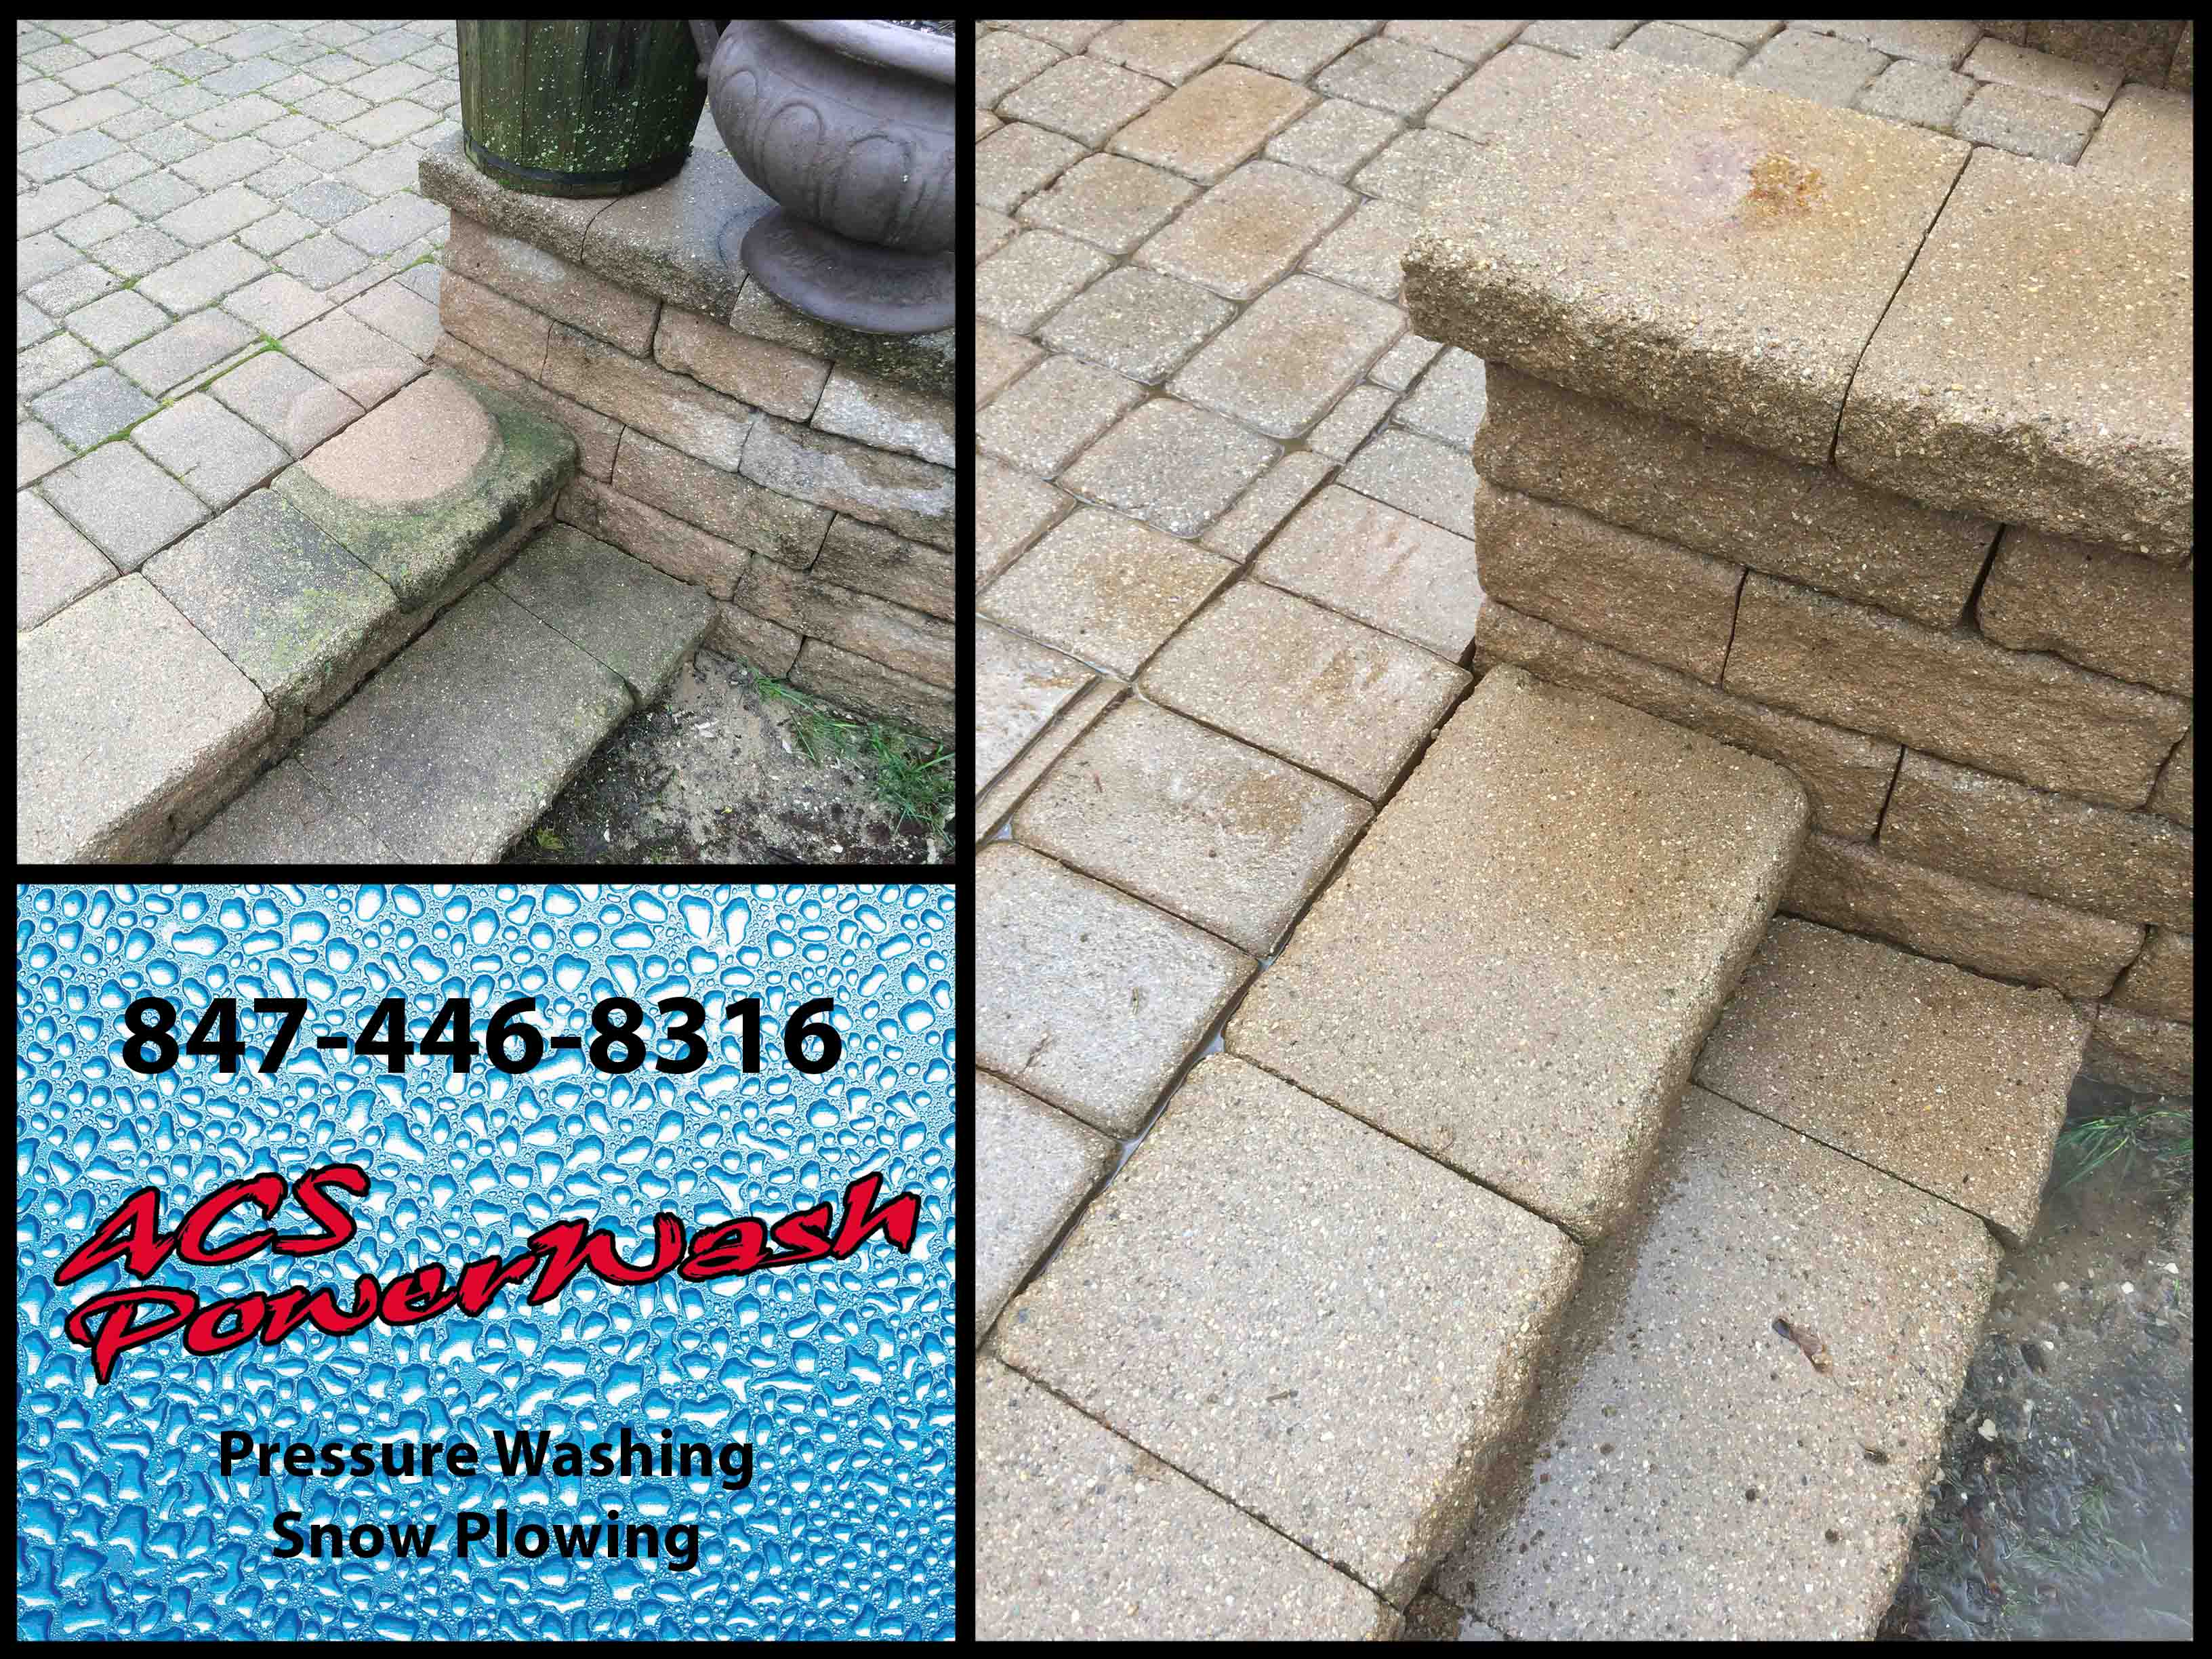 Pressure Washing: Brick Patio Glenview, Illinois (60025